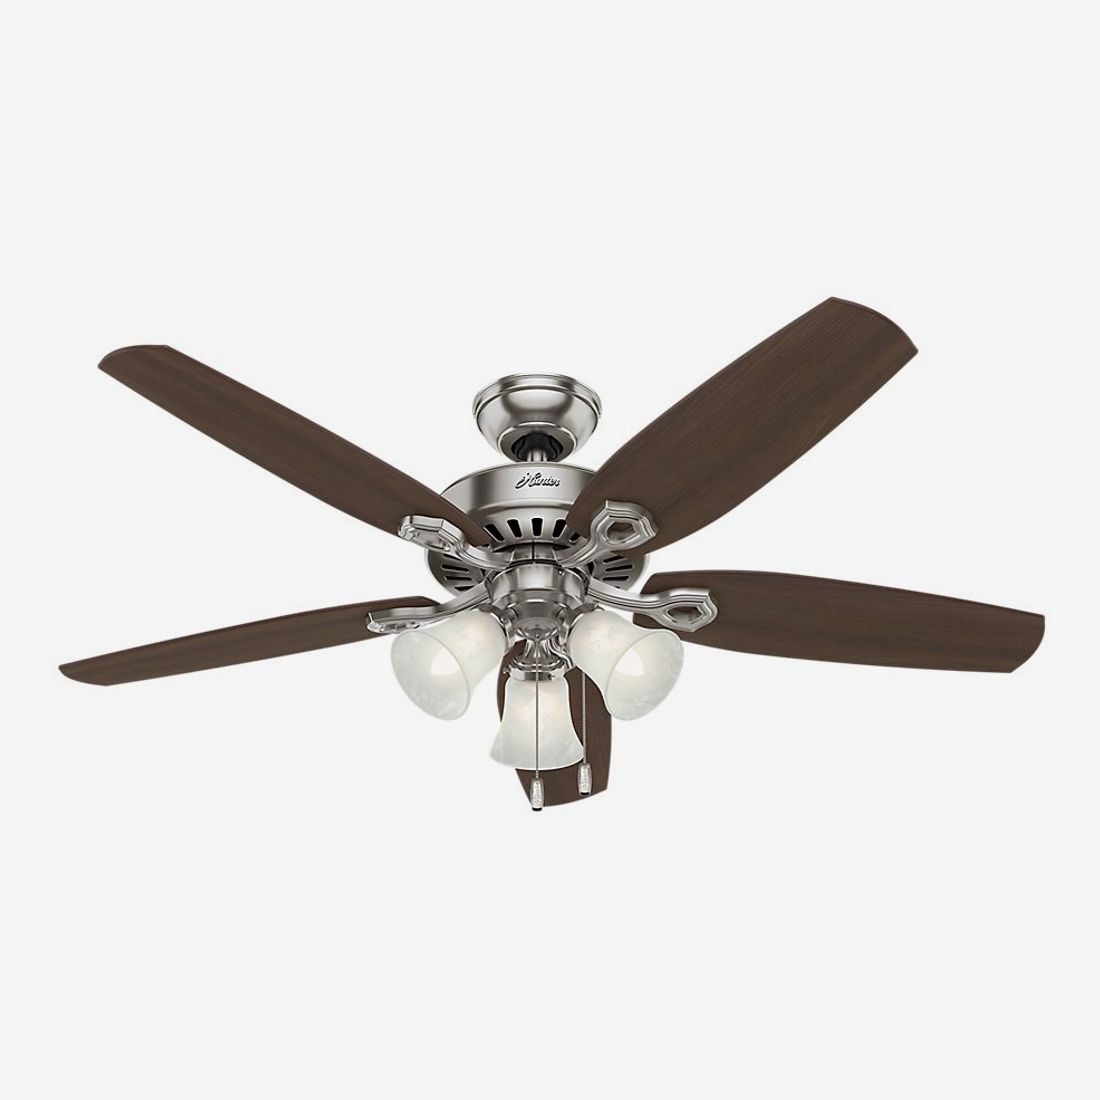 16 Best Ceiling Fans 2020 The